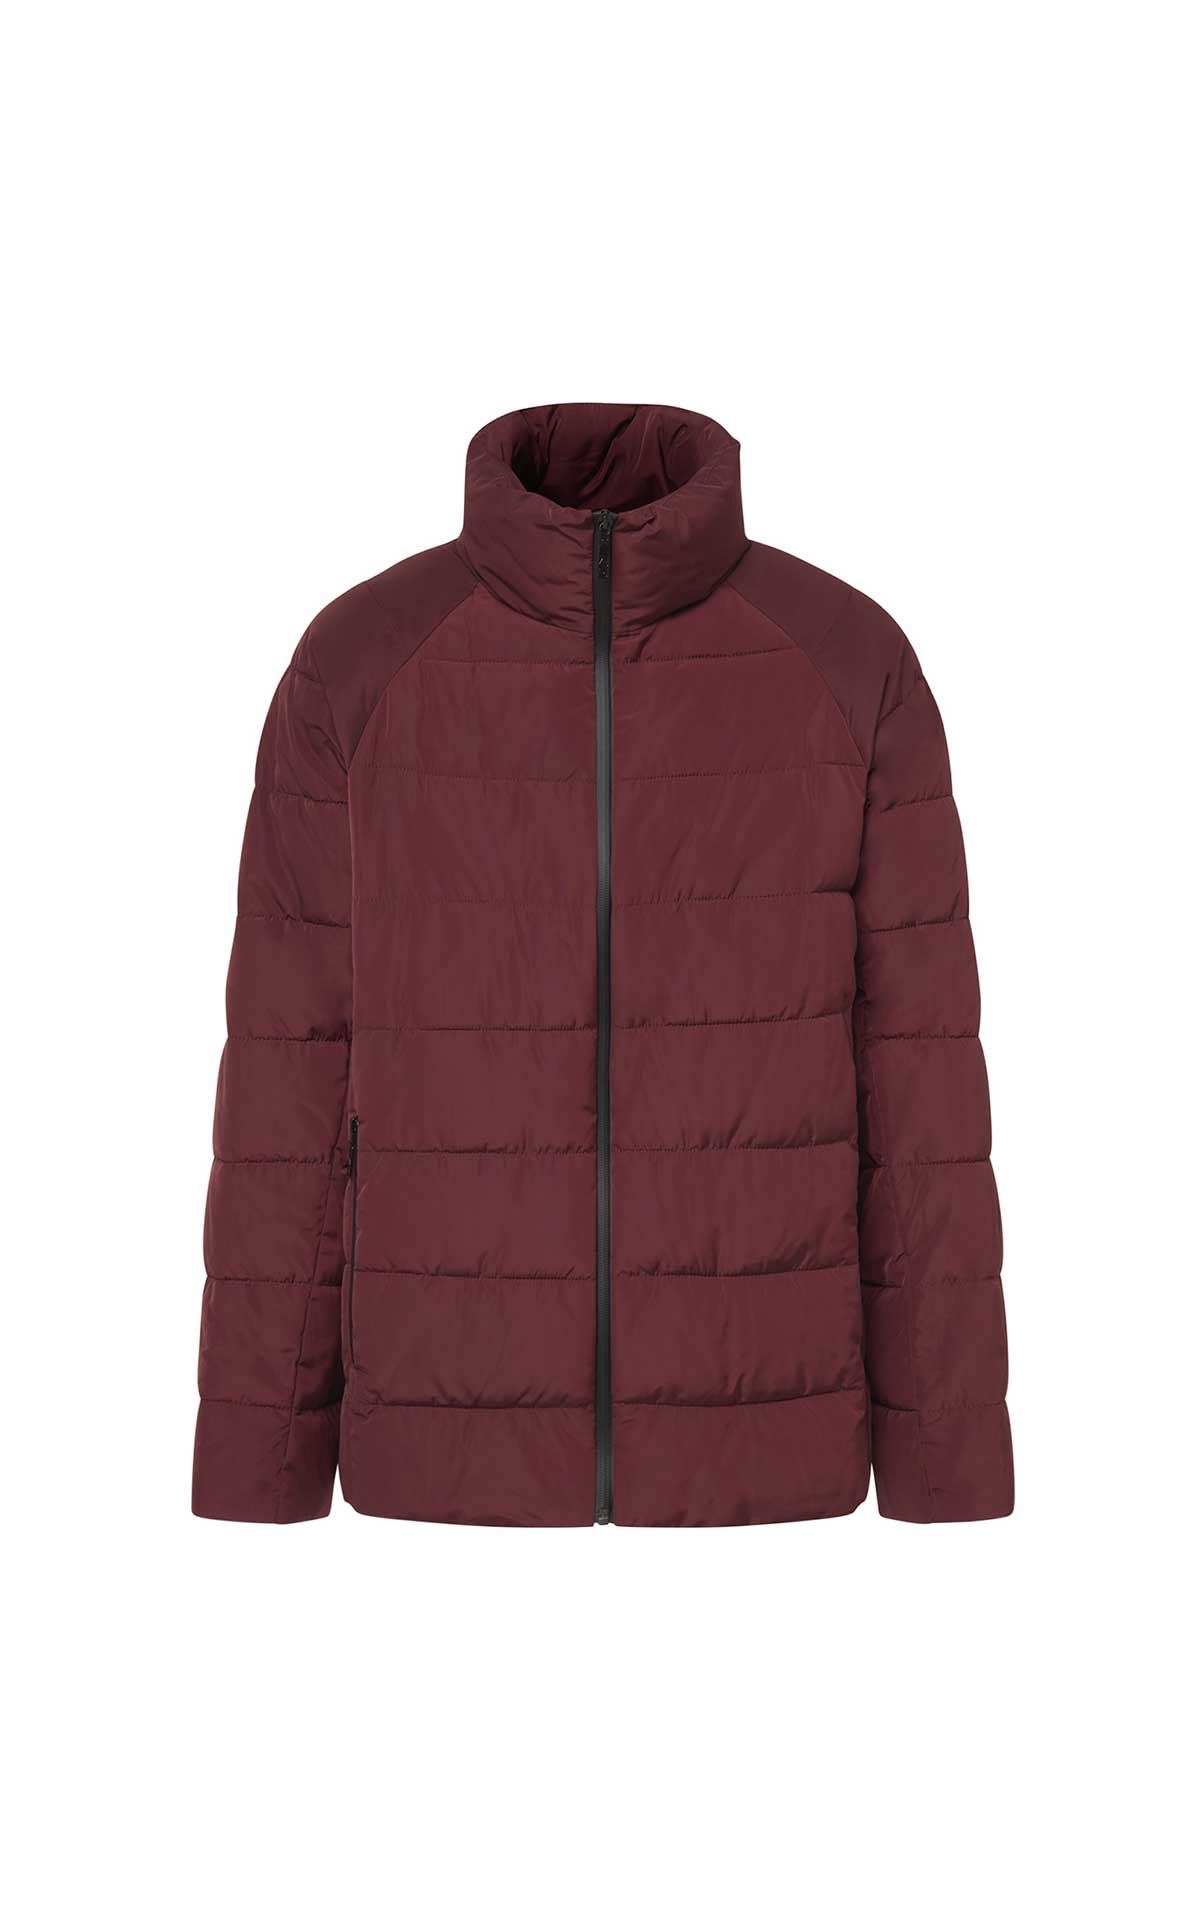 Bordeaux down jacket for men Adolfo Dominguez